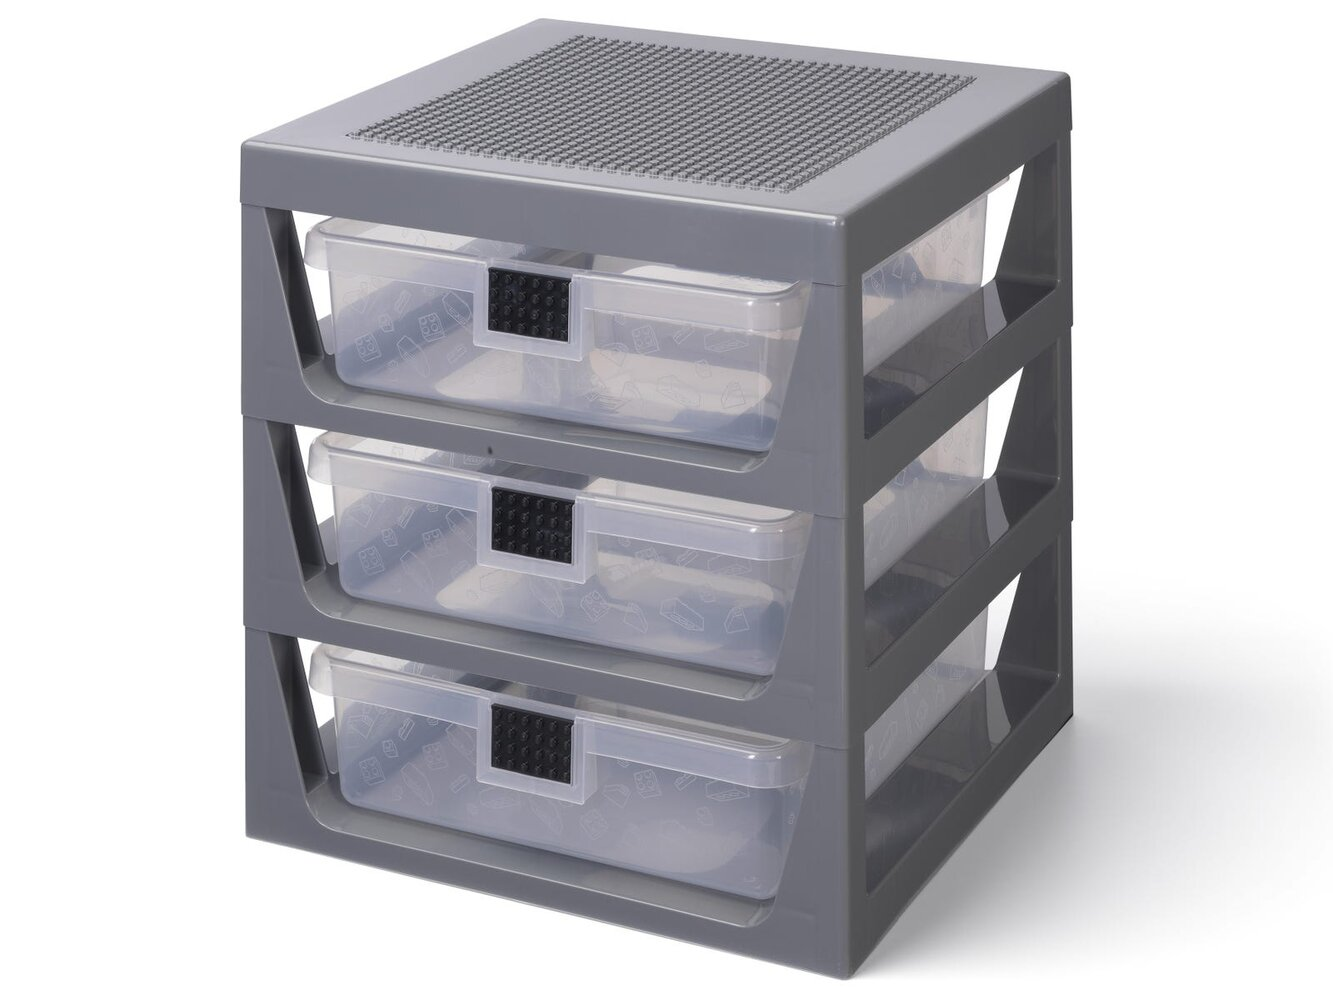 3-Drawer Storage Rack (Gray)